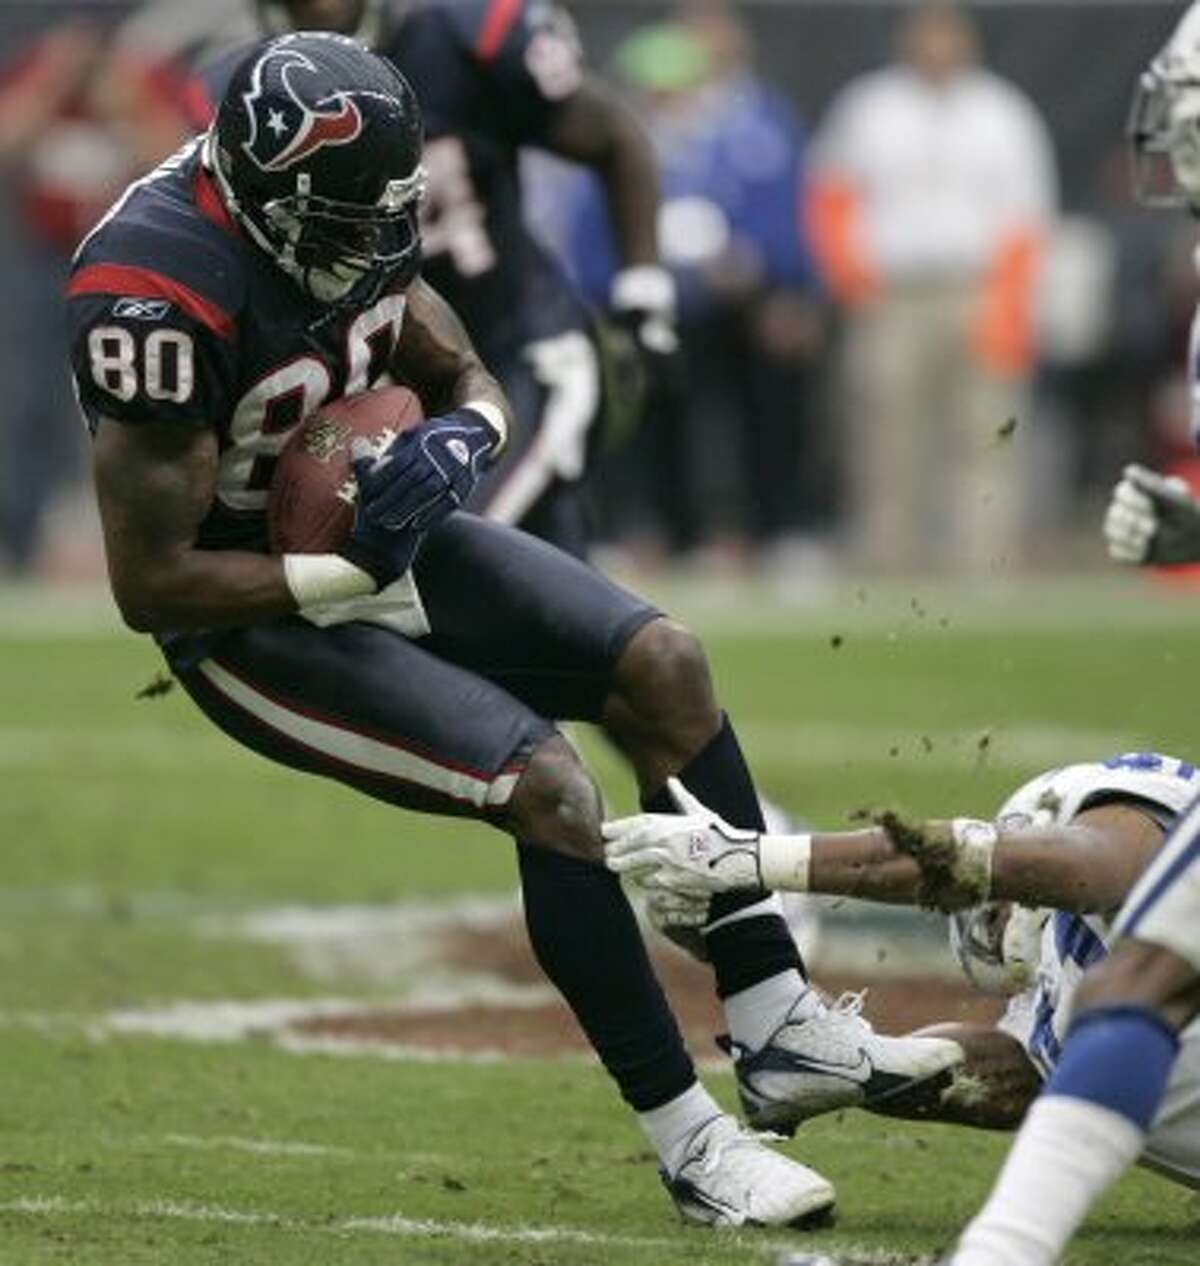 18. David topples Goliath Led by quarterback Peyton Manning, the Colts were the class of the AFC South division for just over the first half of the 21st Century. But the Texans finally broke through on Christmas Eve 2006 when a 48-yard Kris Brown field goal with three seconds left secured a 27-24 win.